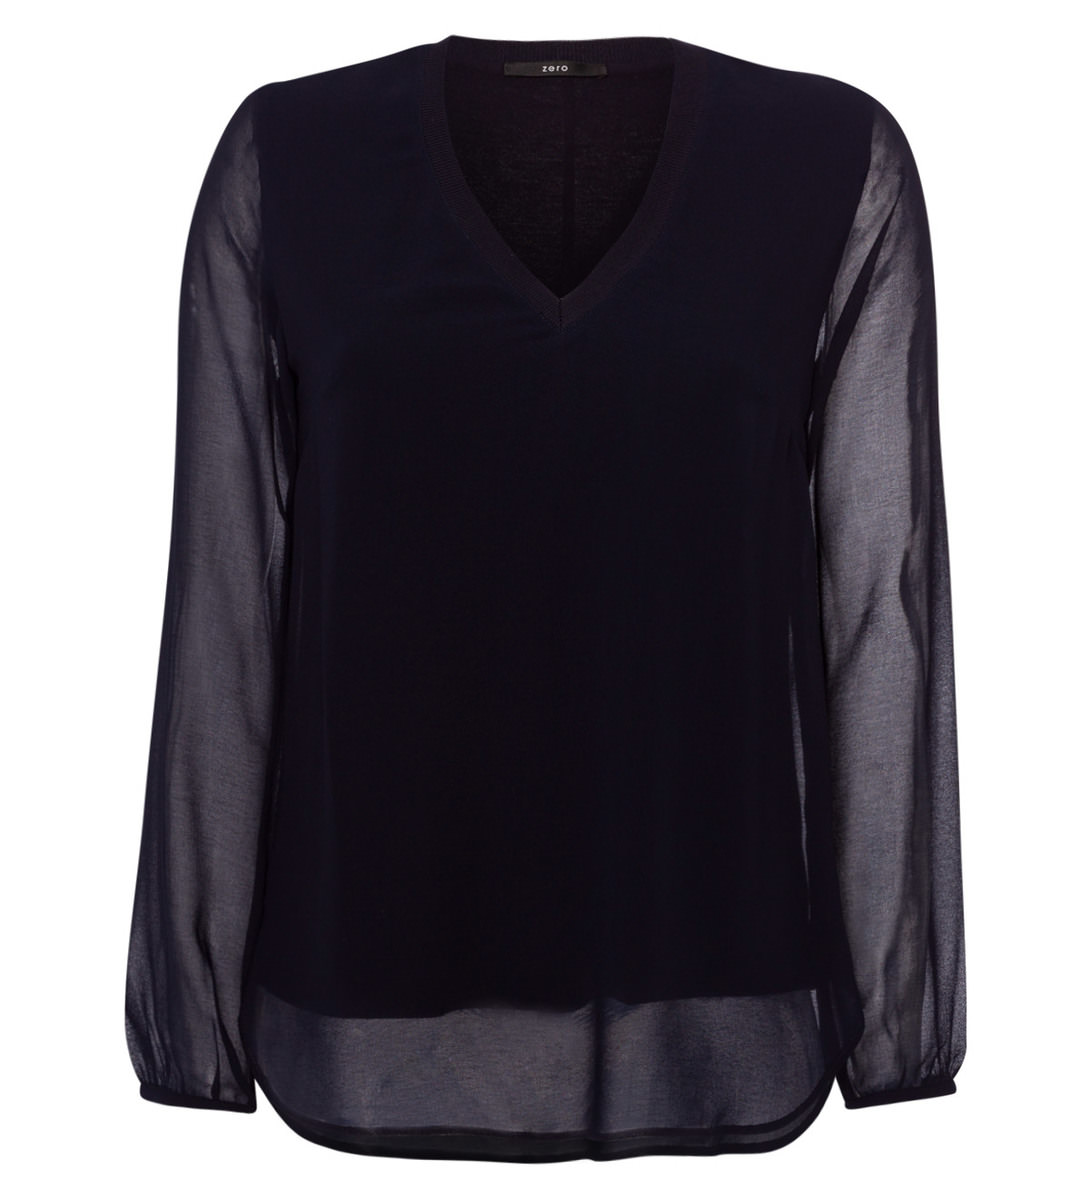 Bluse im Layering-Look in blue black